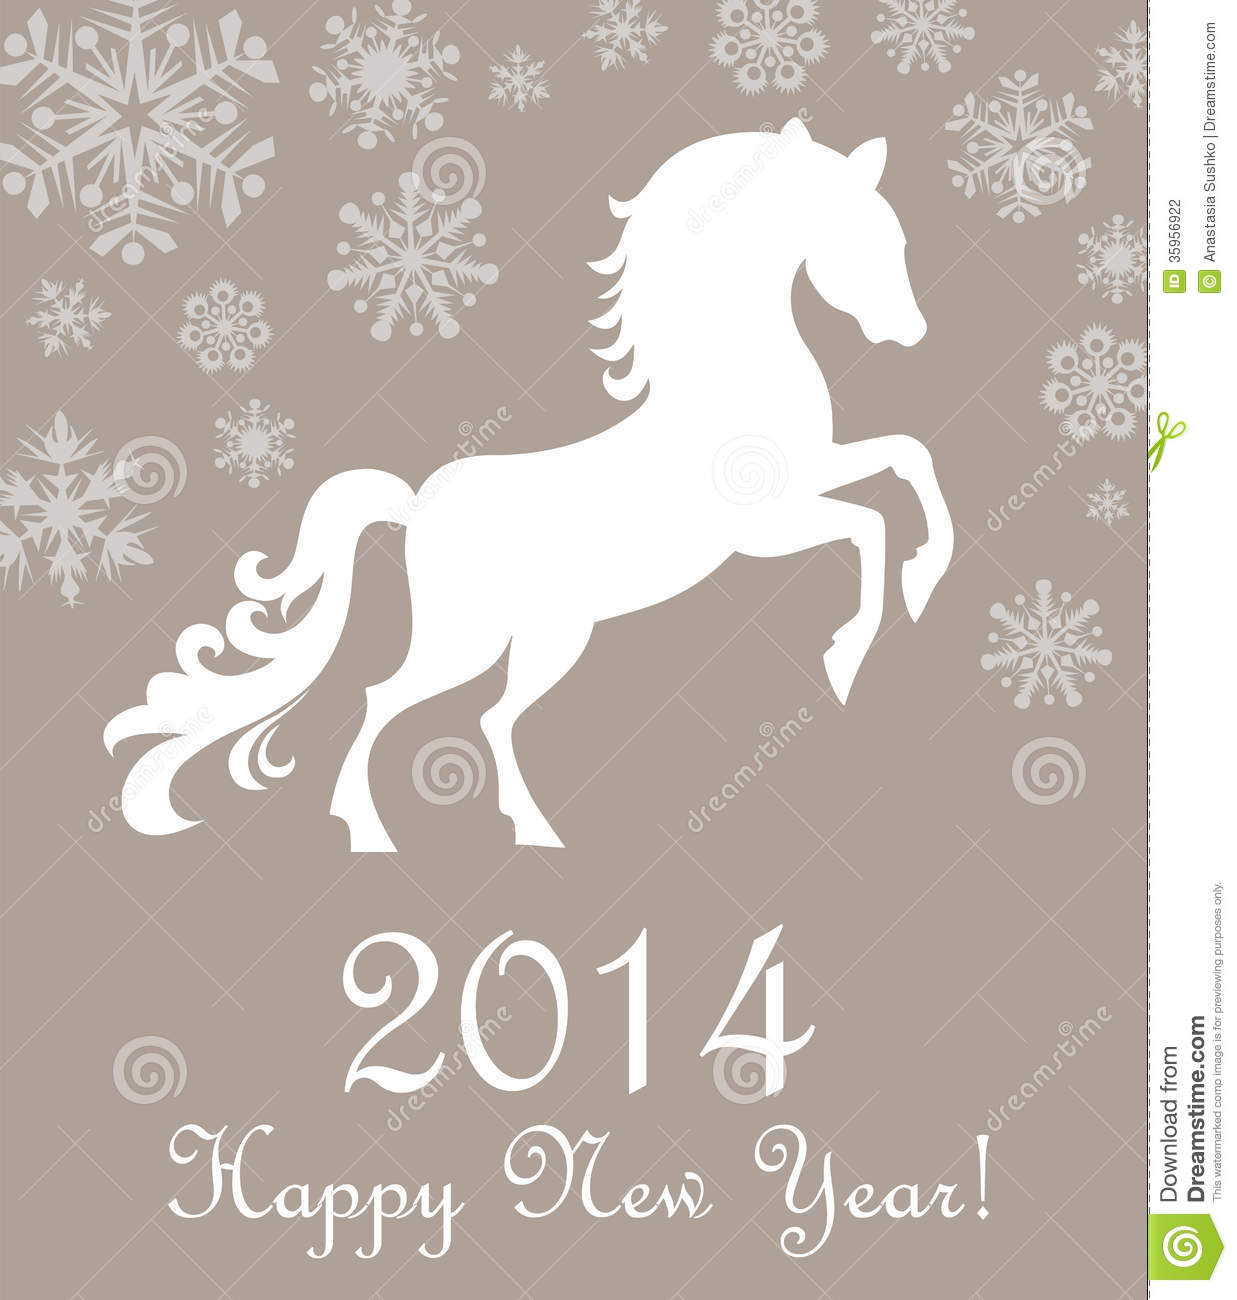 Horse 2014. Winter Christmas Card. Stock Photography - Image: 35956922